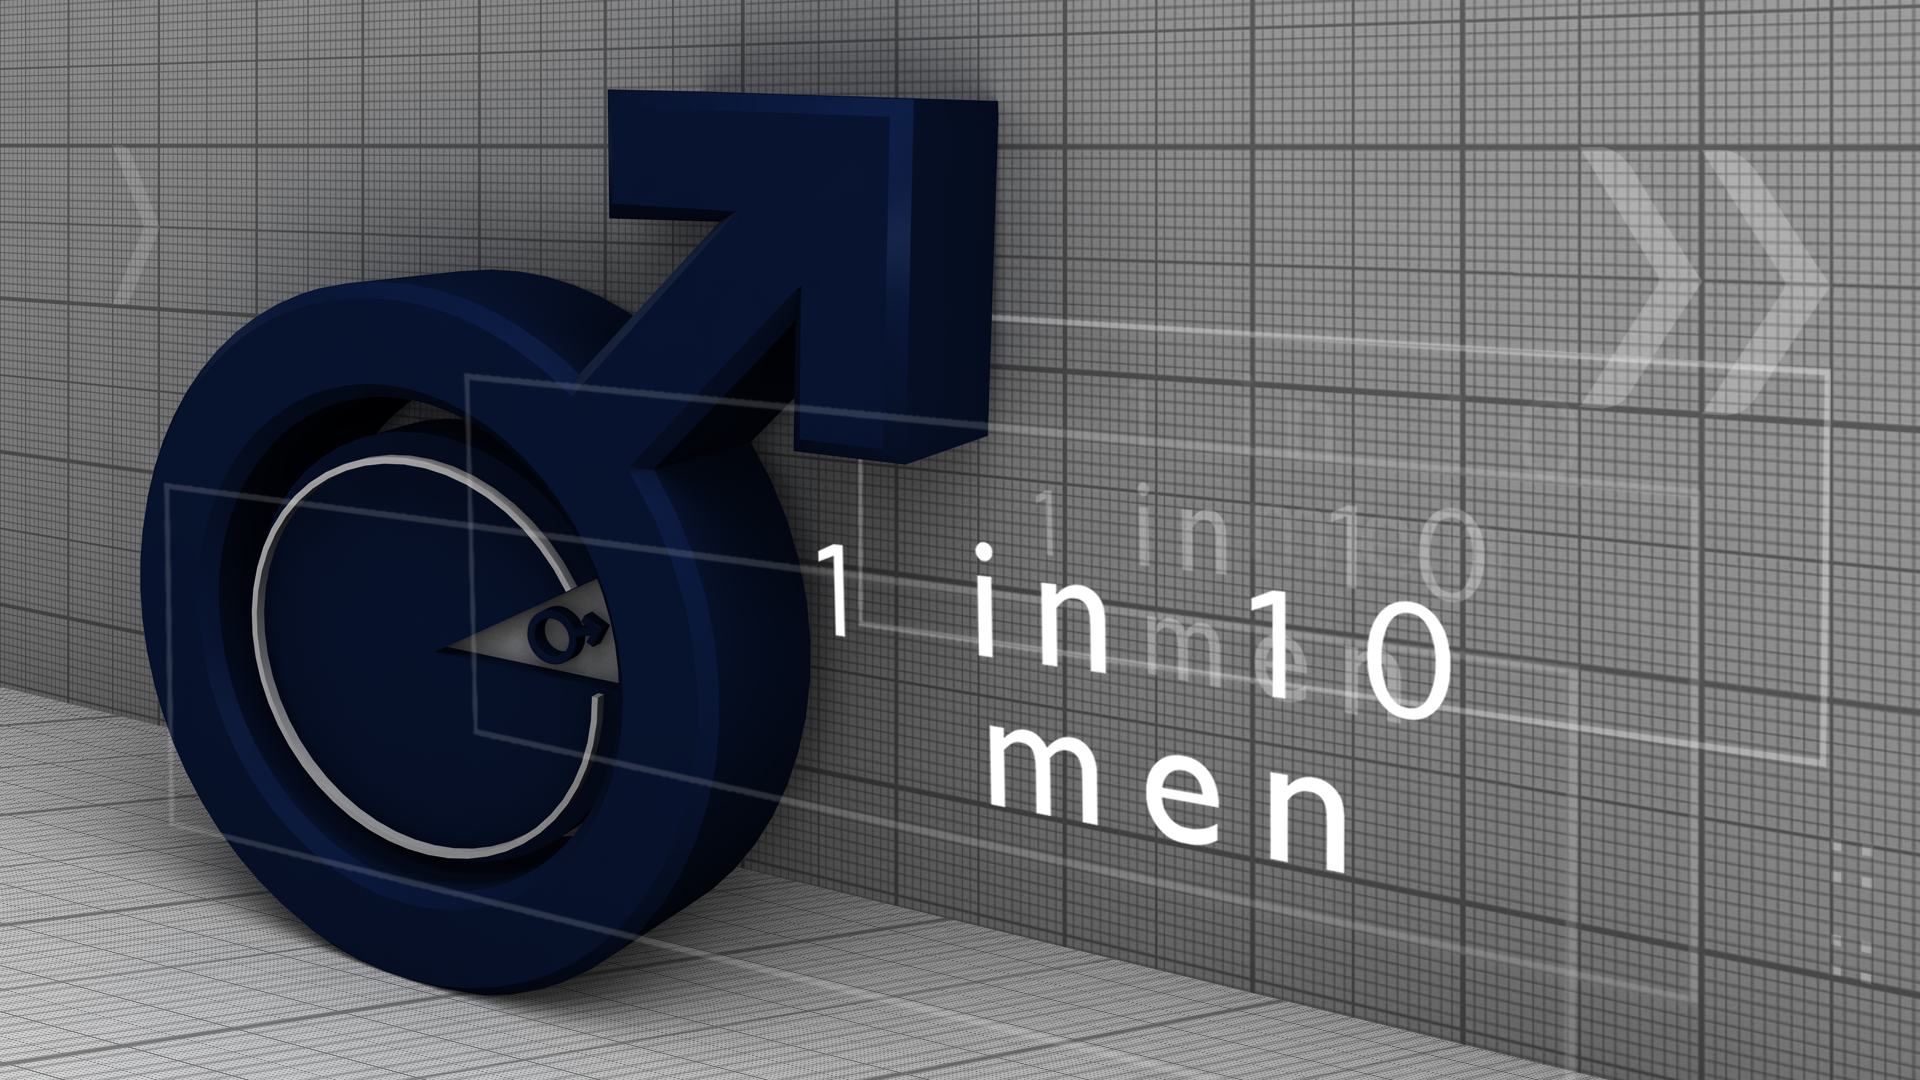 06_1in10men.png